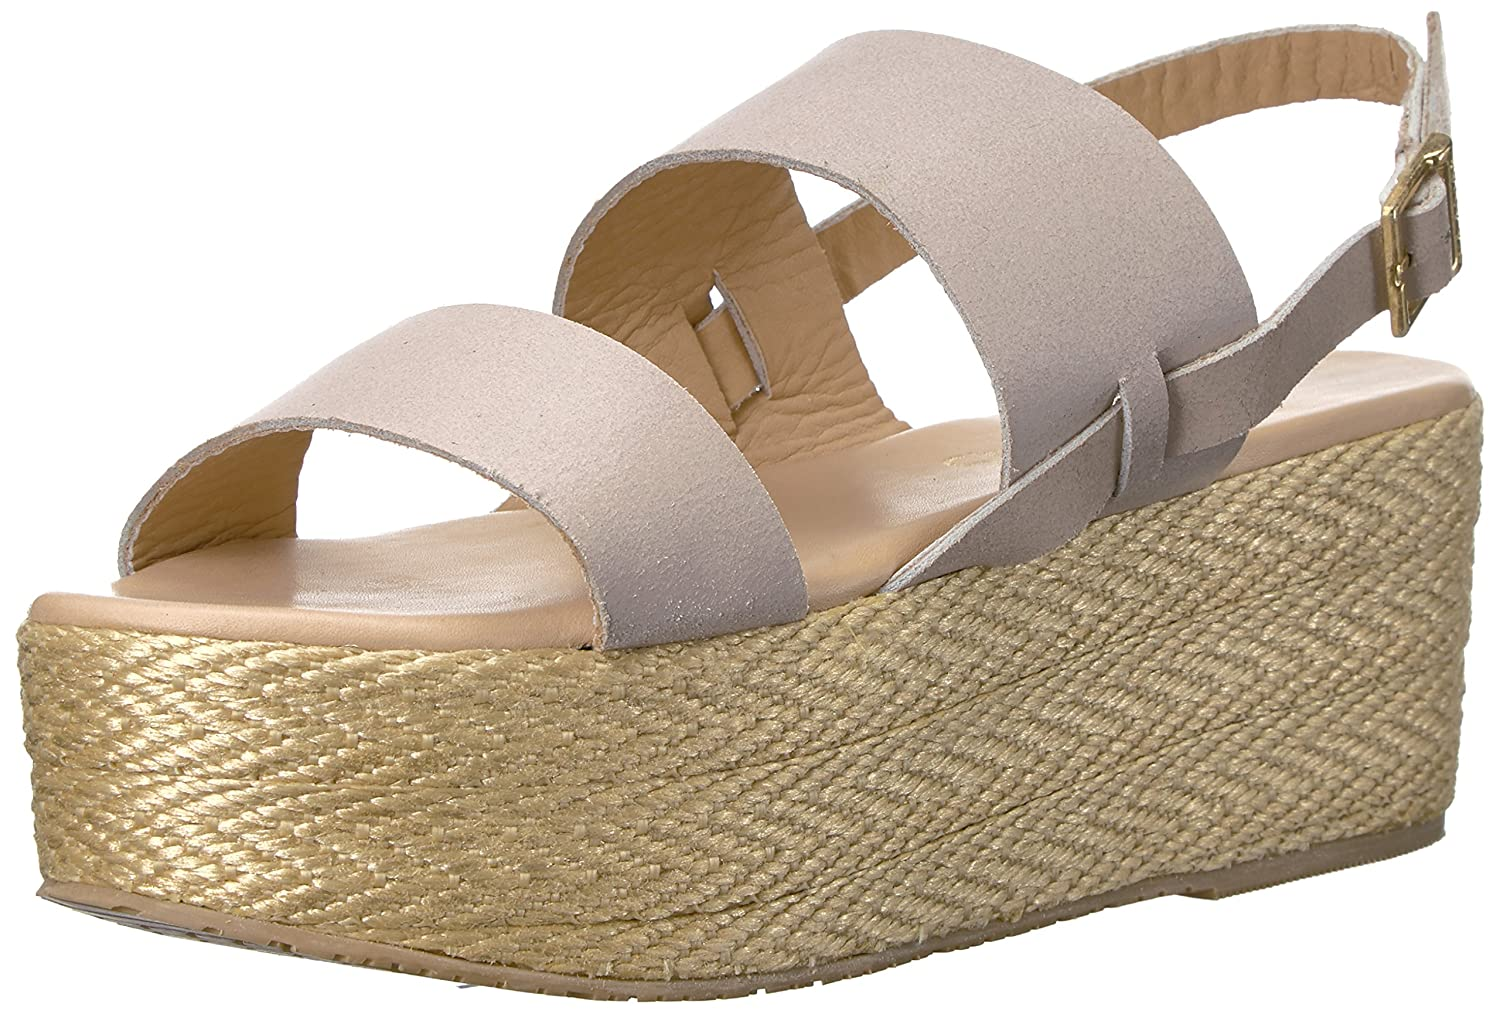 KAANAS Women's Montpellier Braided Open Toe Sling Back Espadrille Wedge Sandal B01N3OXJ8B 9 B(M) US|Nude